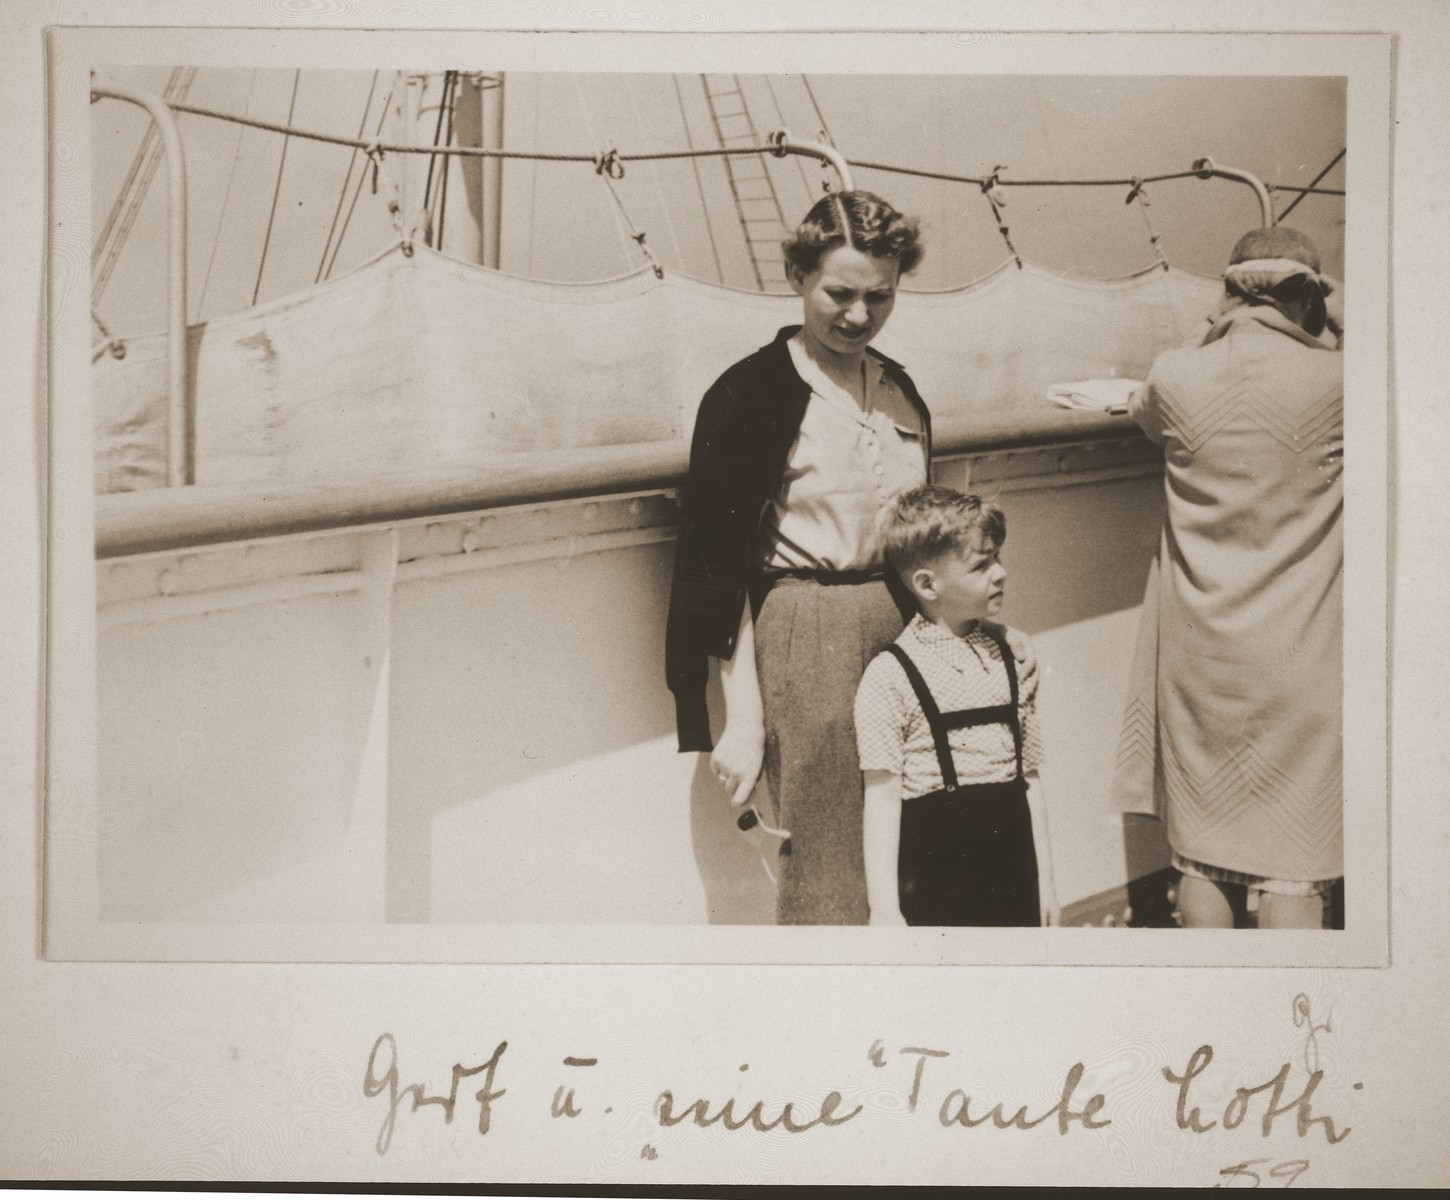 Charlotte Vendig and Gerd-Fritz Grunstein on board the MS St. Louis.  The caption on the photo reads: Gert and his 'Aunt Lotte'.